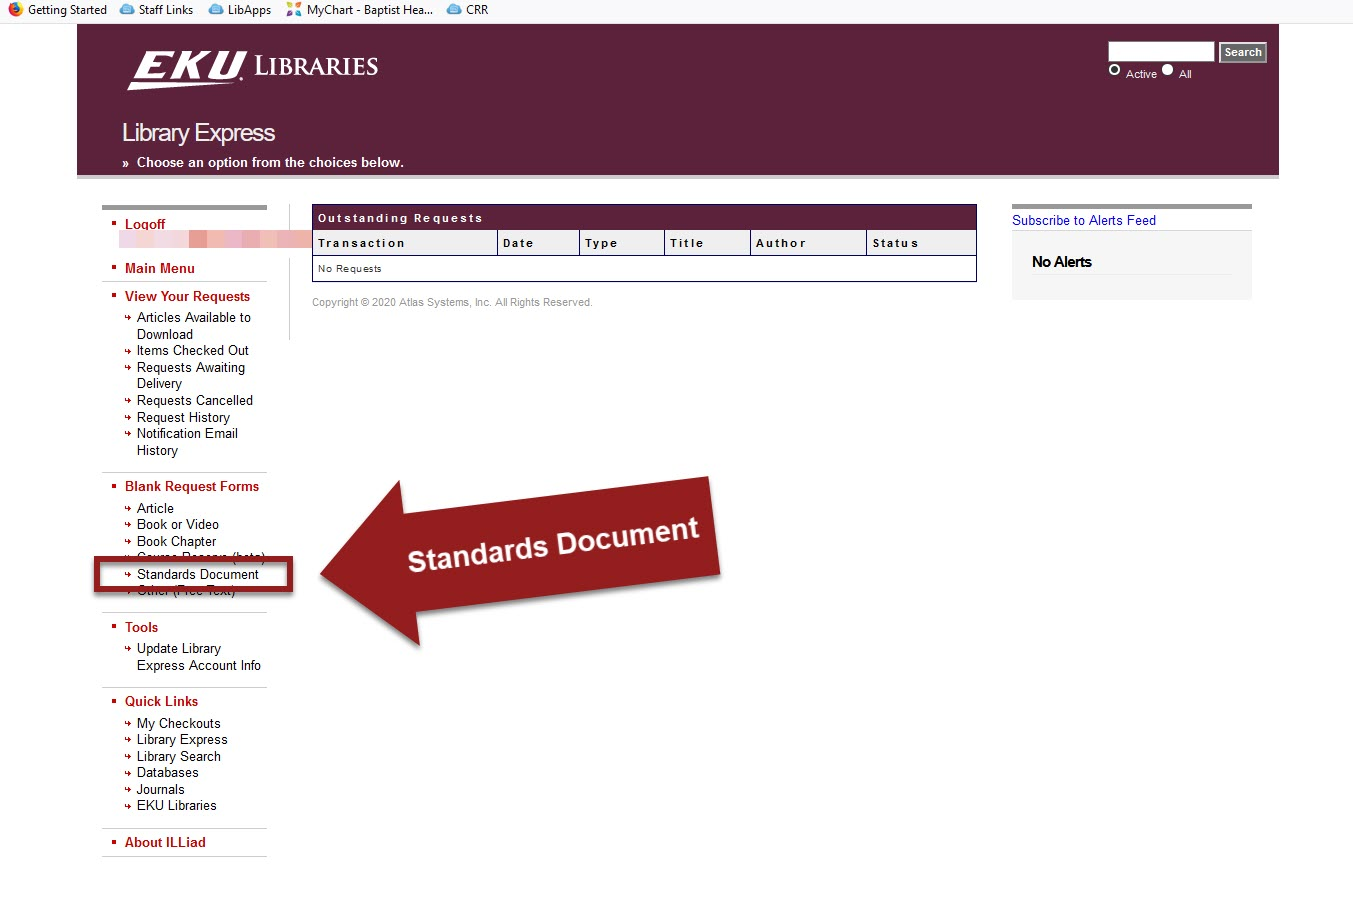 """Library Express account with """"Standards Document"""" highlighted under Blank Request Forms"""